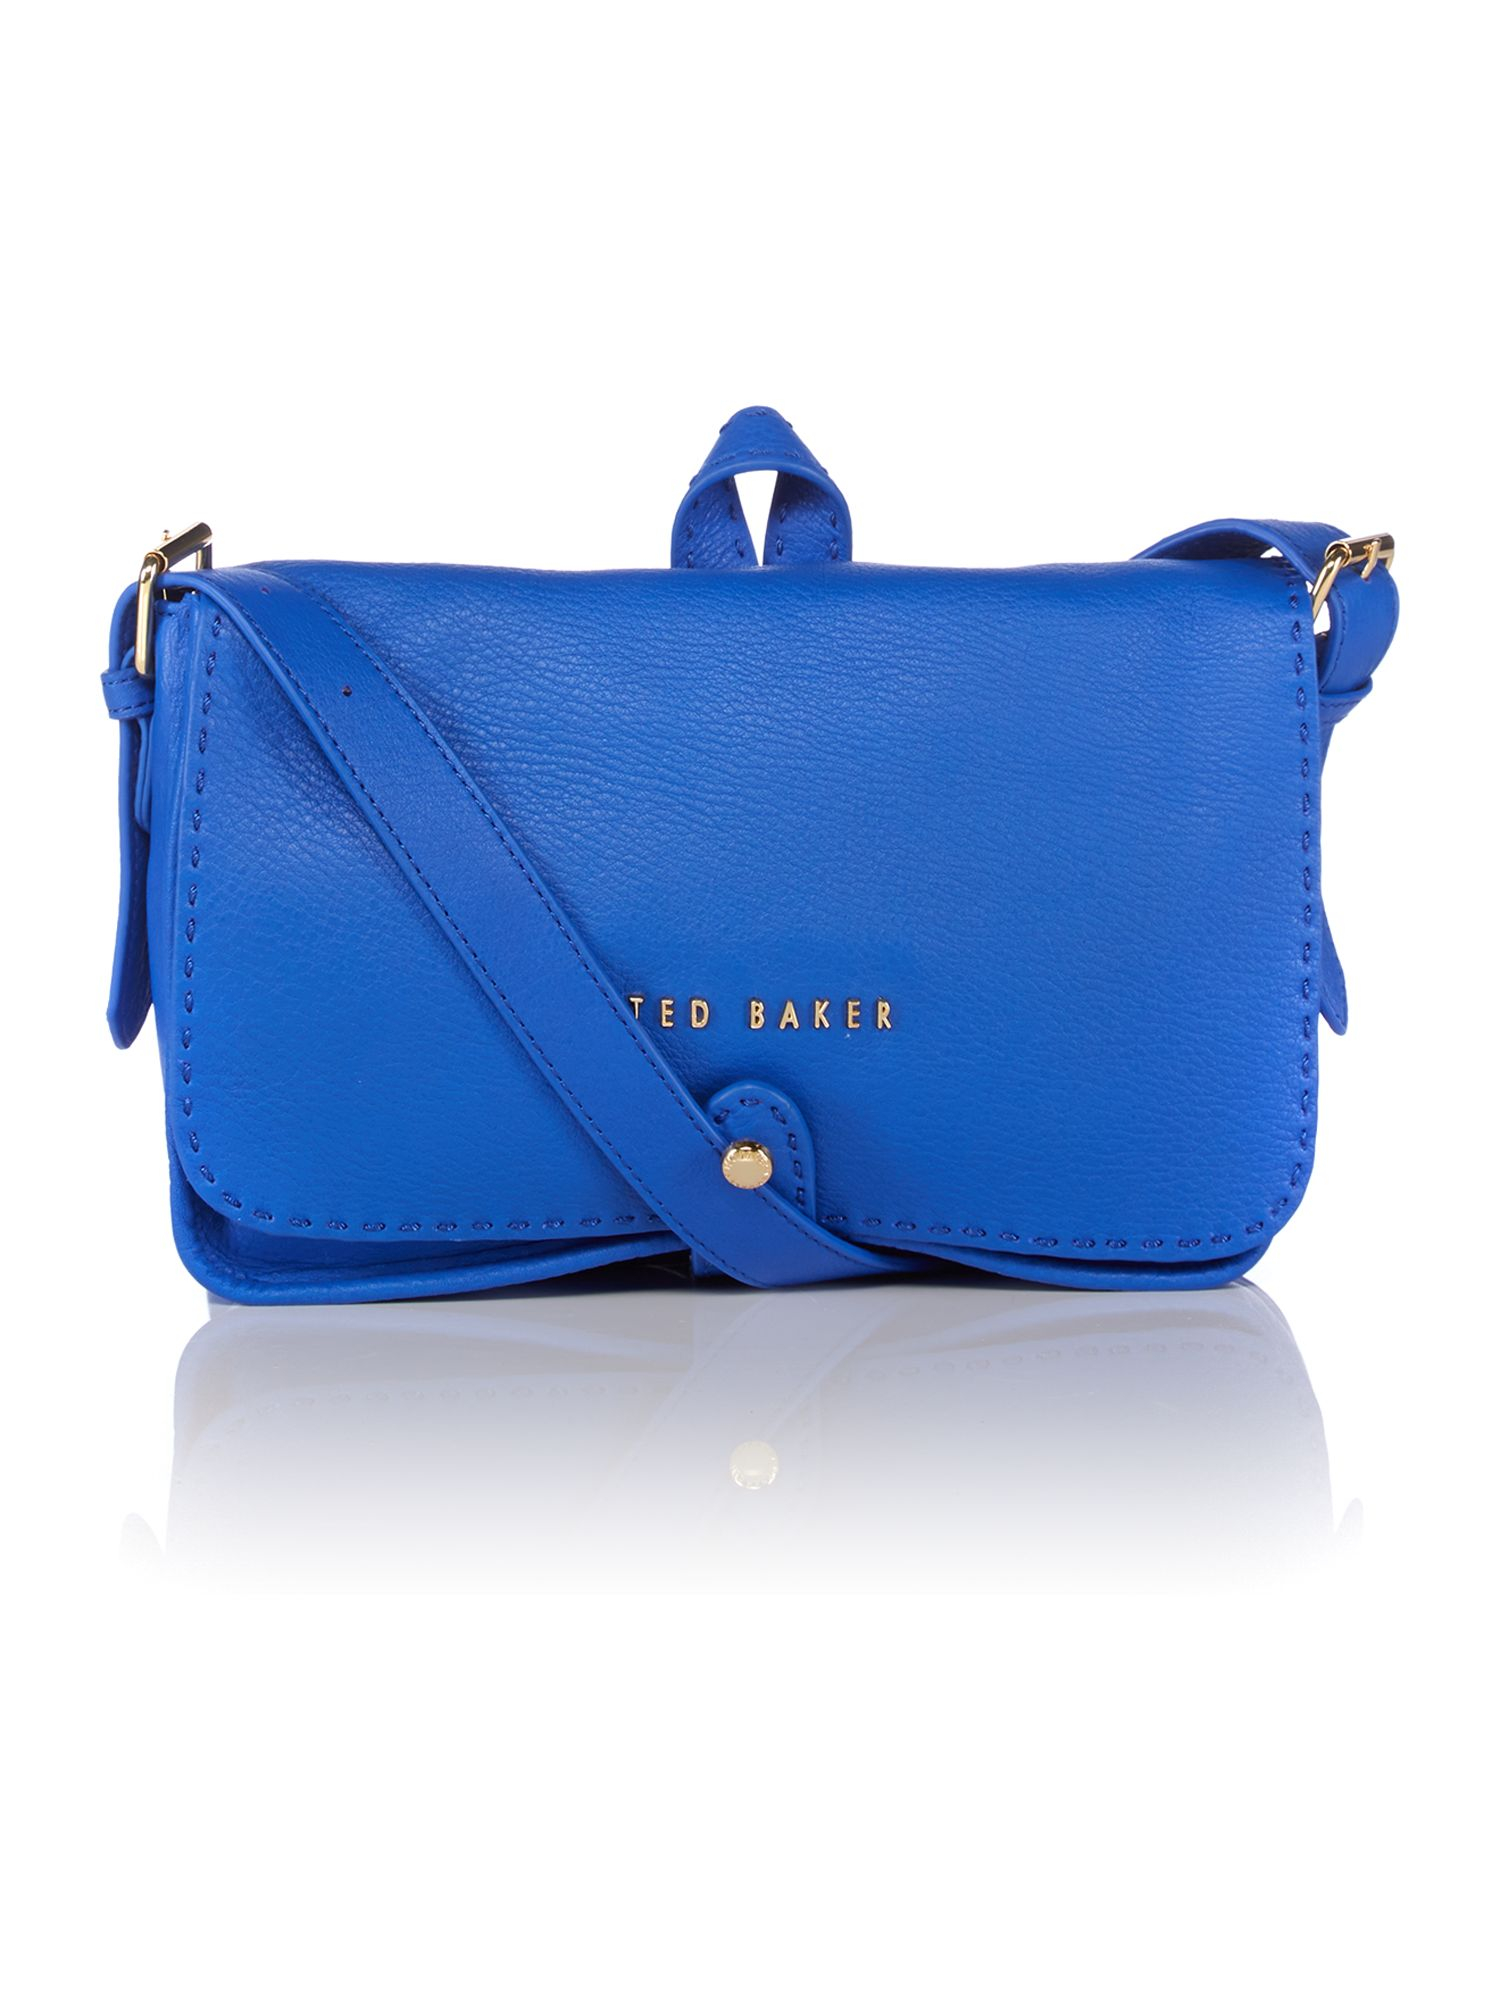 Ted Baker Blue Medium Leather Cross Body Bag in Blue